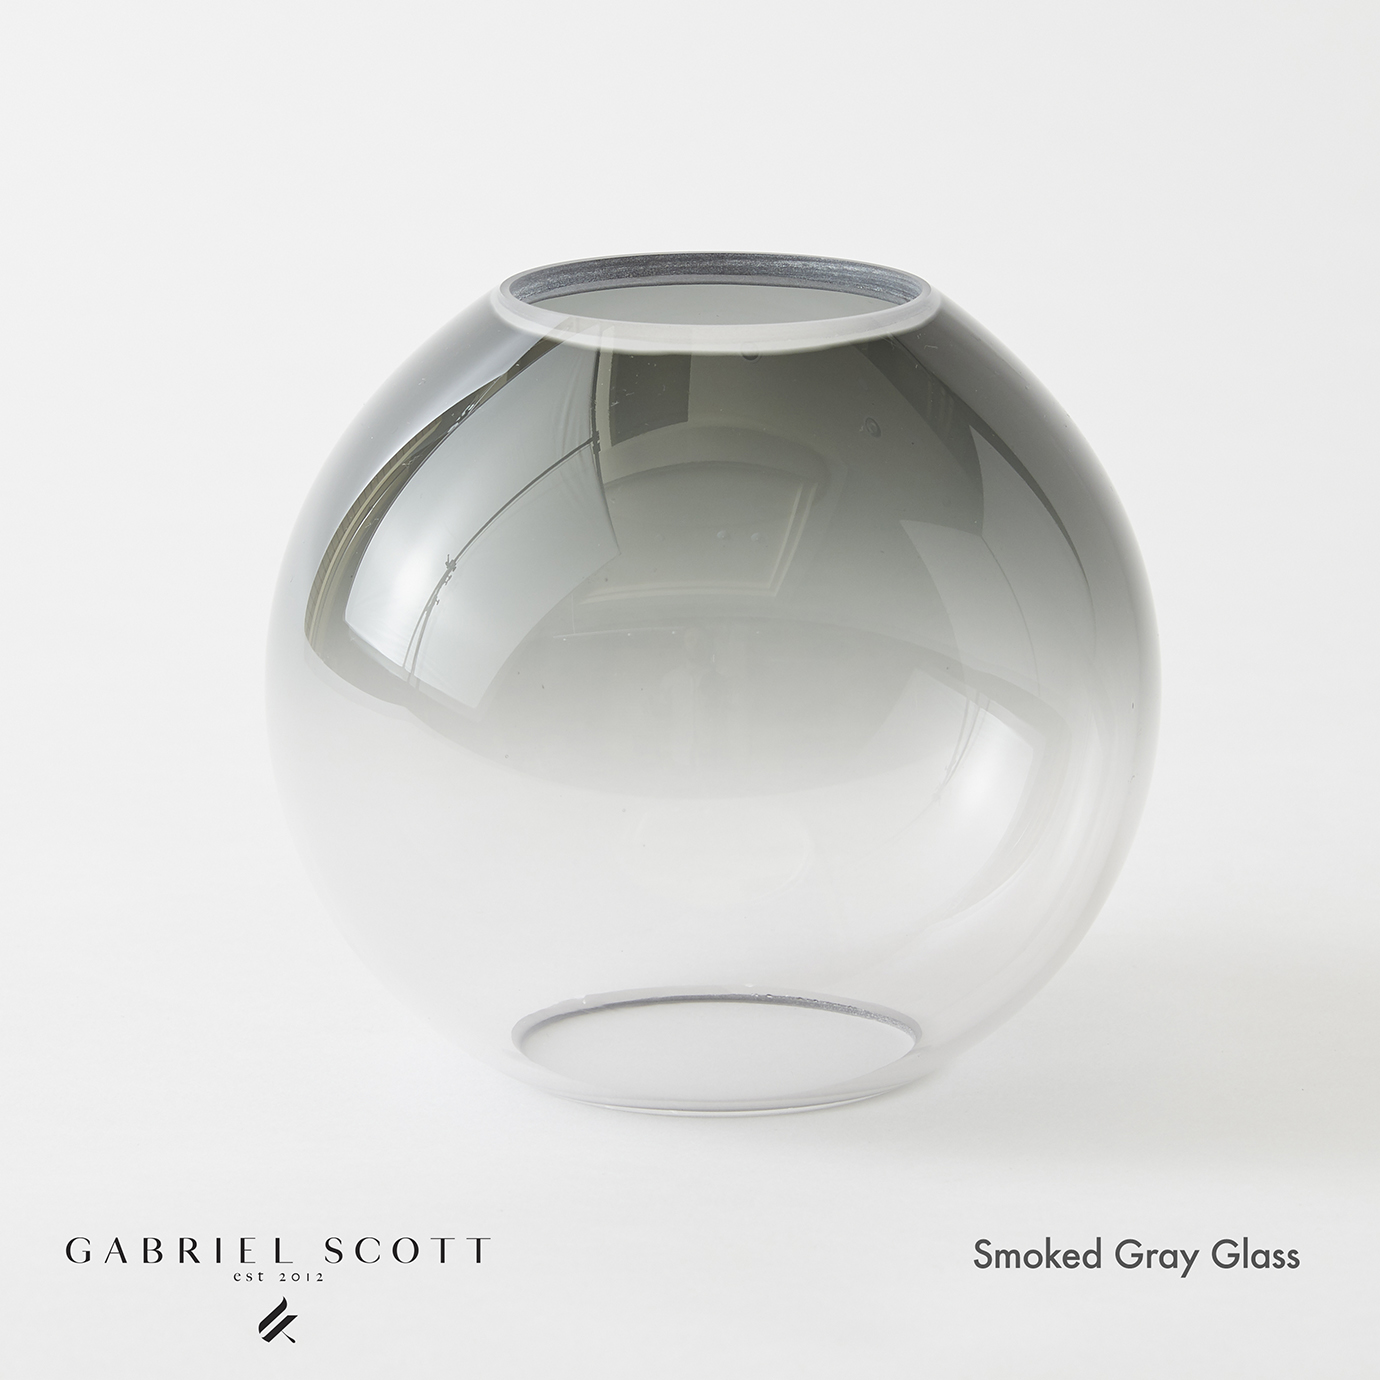 Smoked Gray Glass - GABRIEL SCOTT.jpg